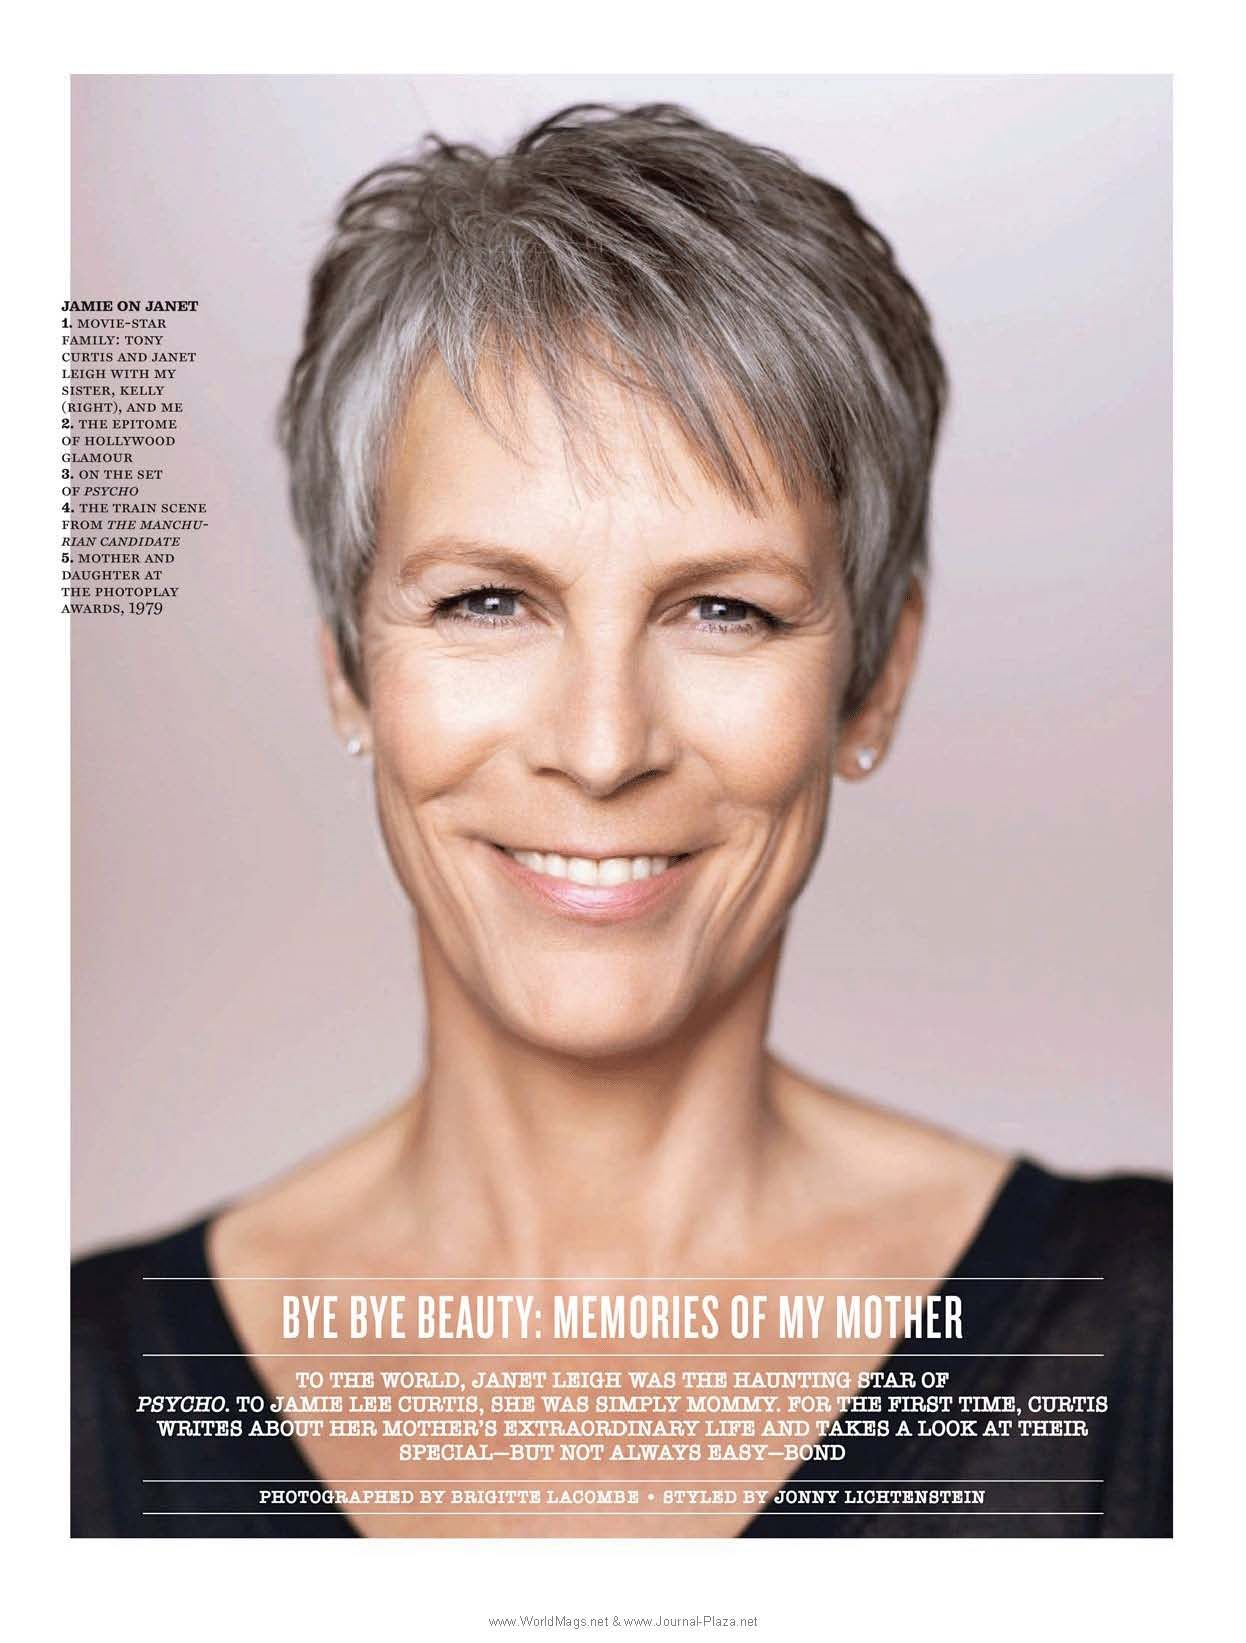 jamie lee curtis i had a crush on her when she was in the original